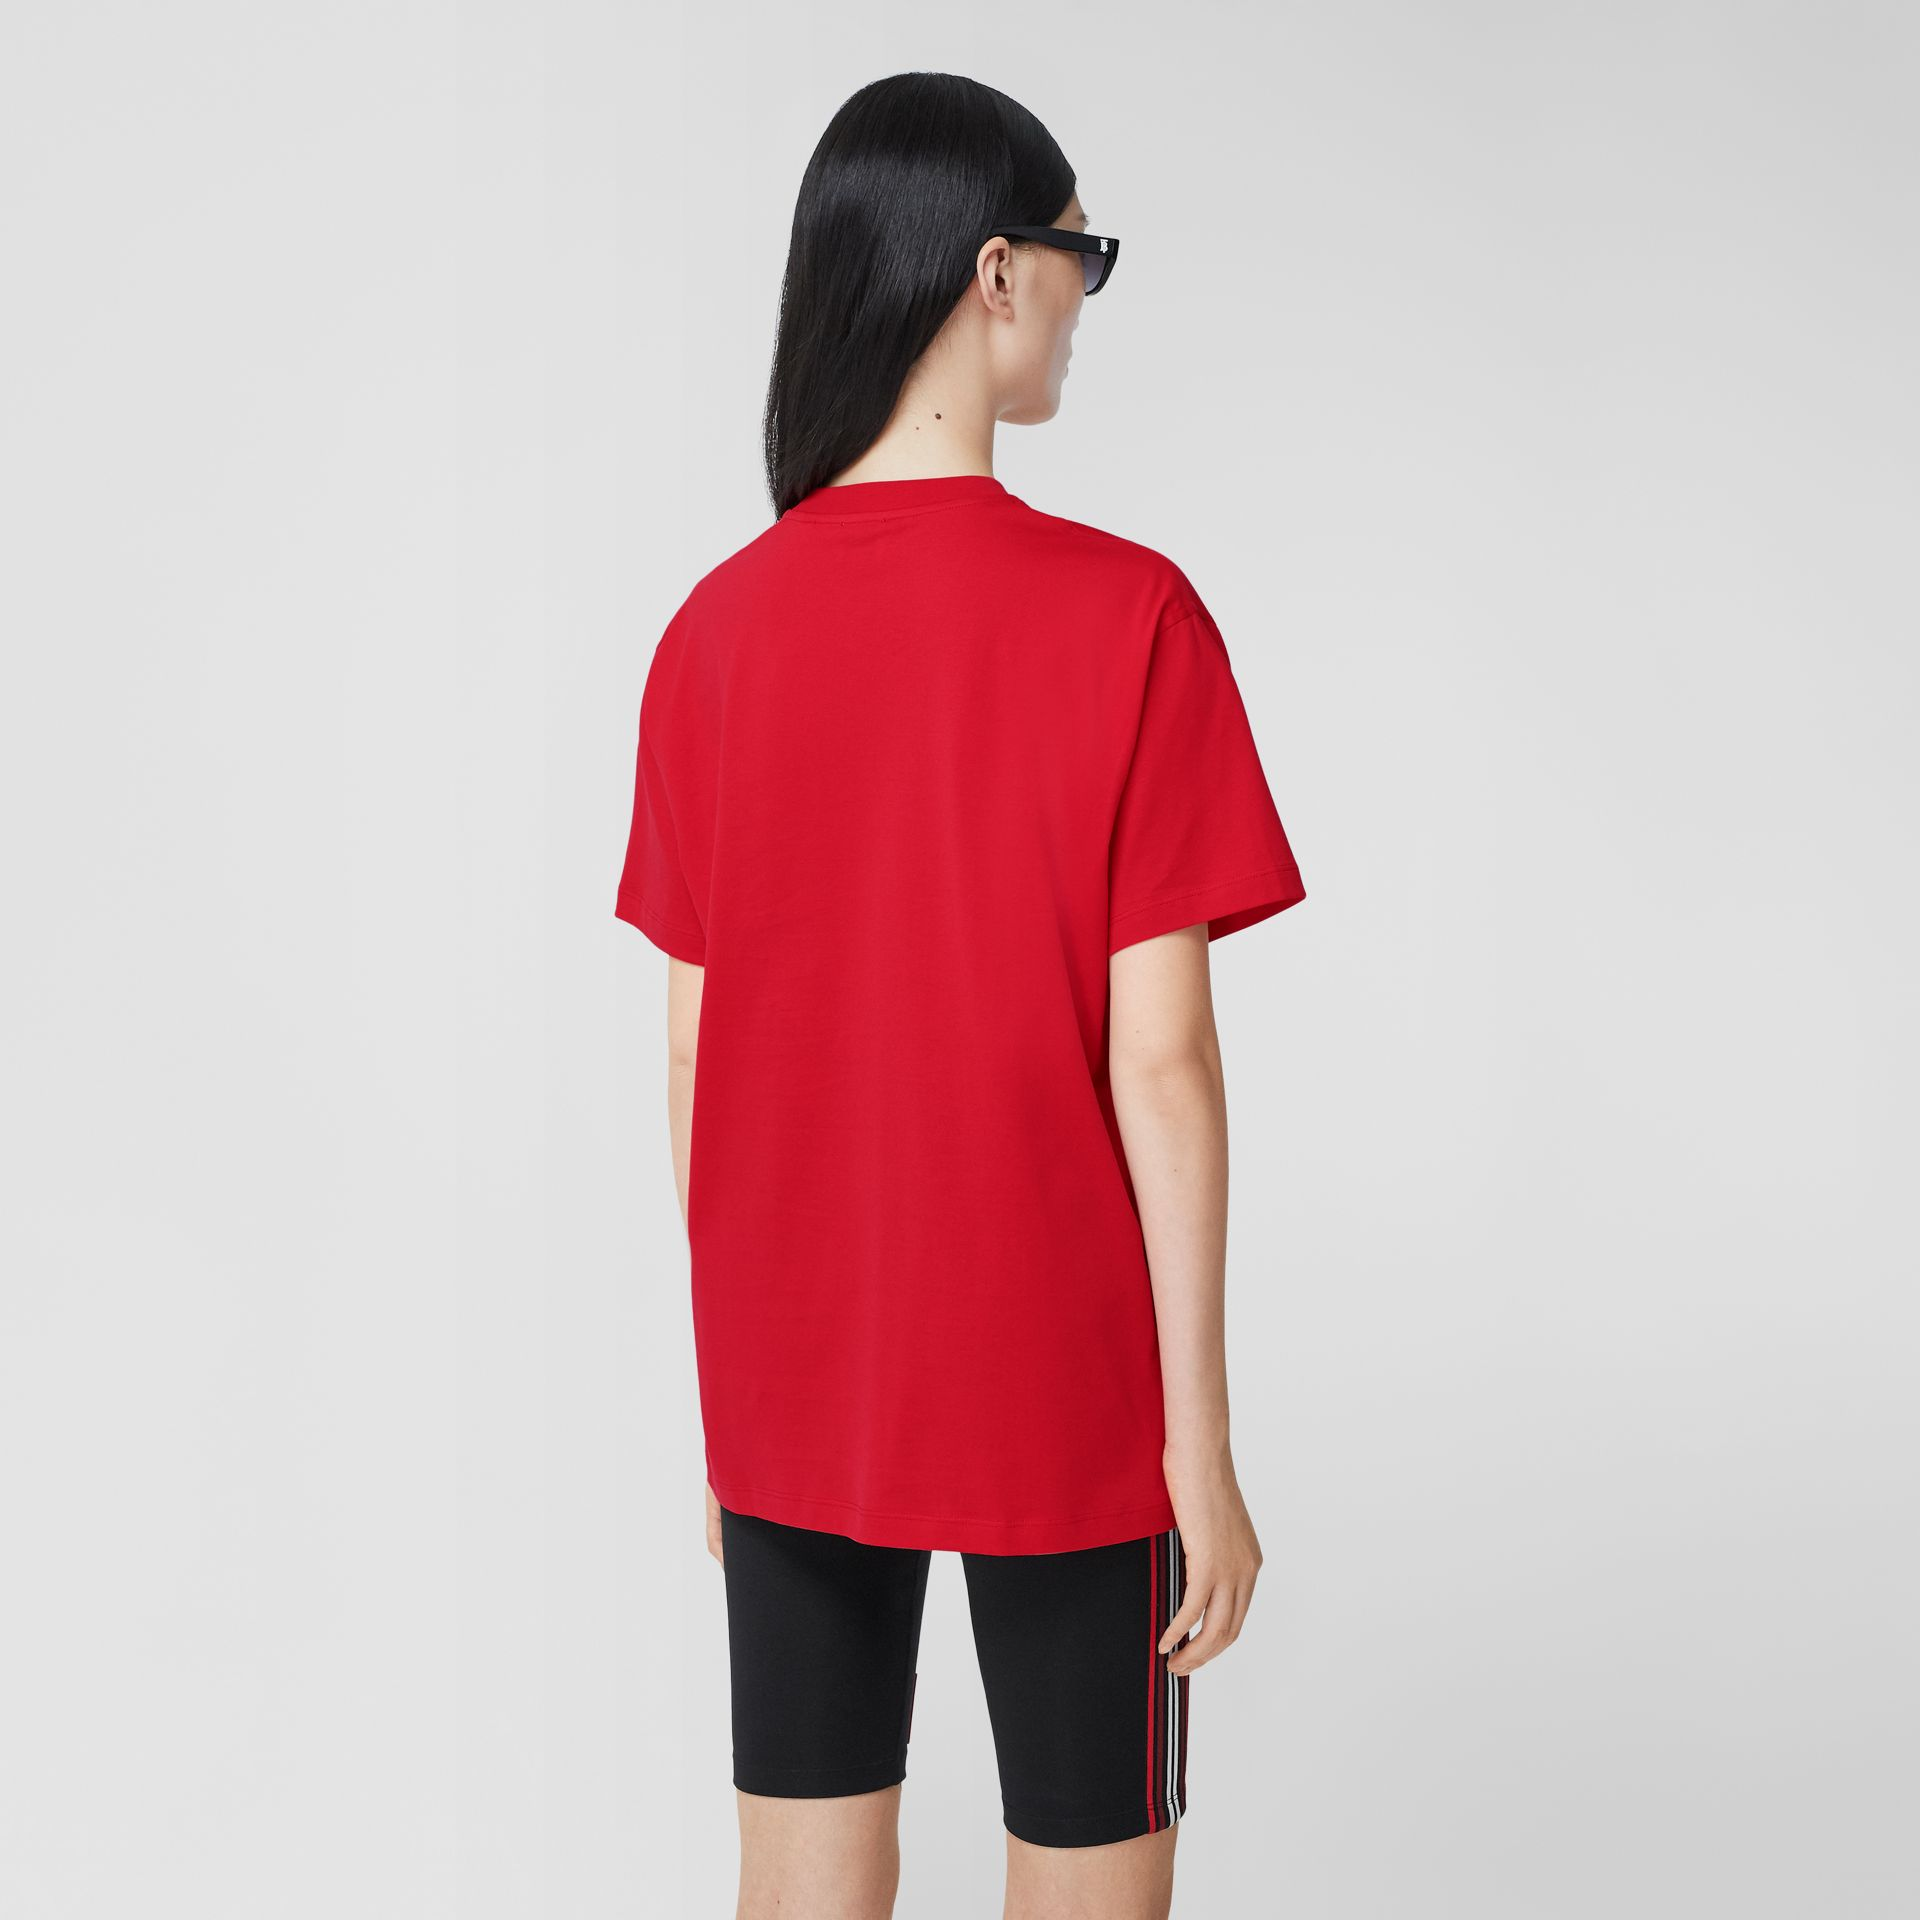 Monogram Motif Cotton Oversized T-shirt in Bright Red - Women | Burberry United Kingdom - gallery image 2